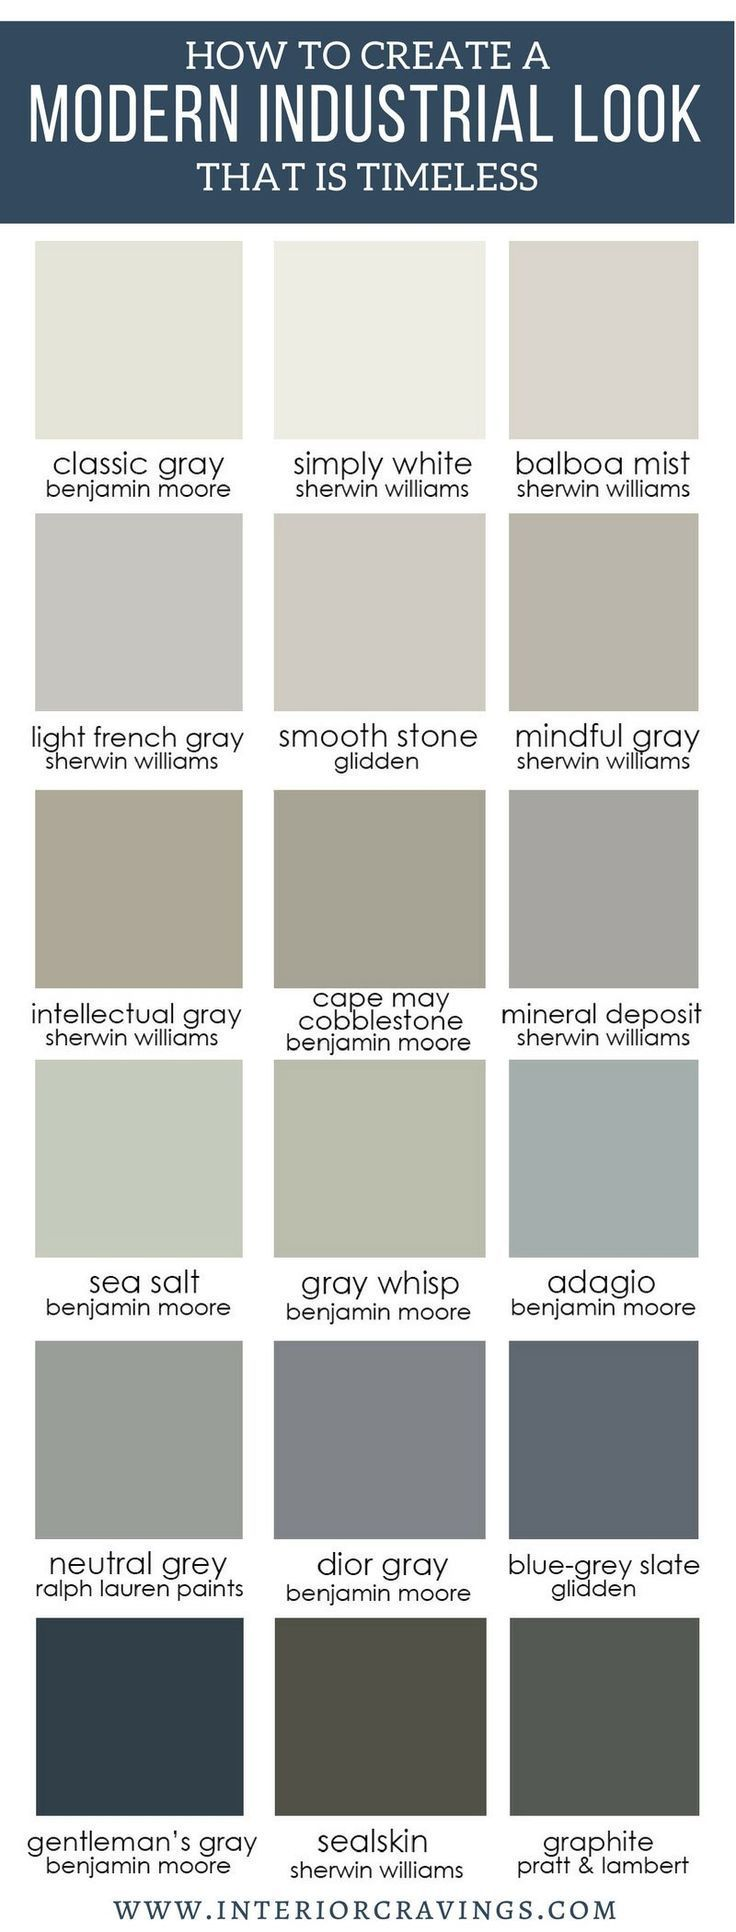 CRAVINGS - How to create a modern industrial look that is timeless - neutral paint color palette options for a modern industrial look in your decor